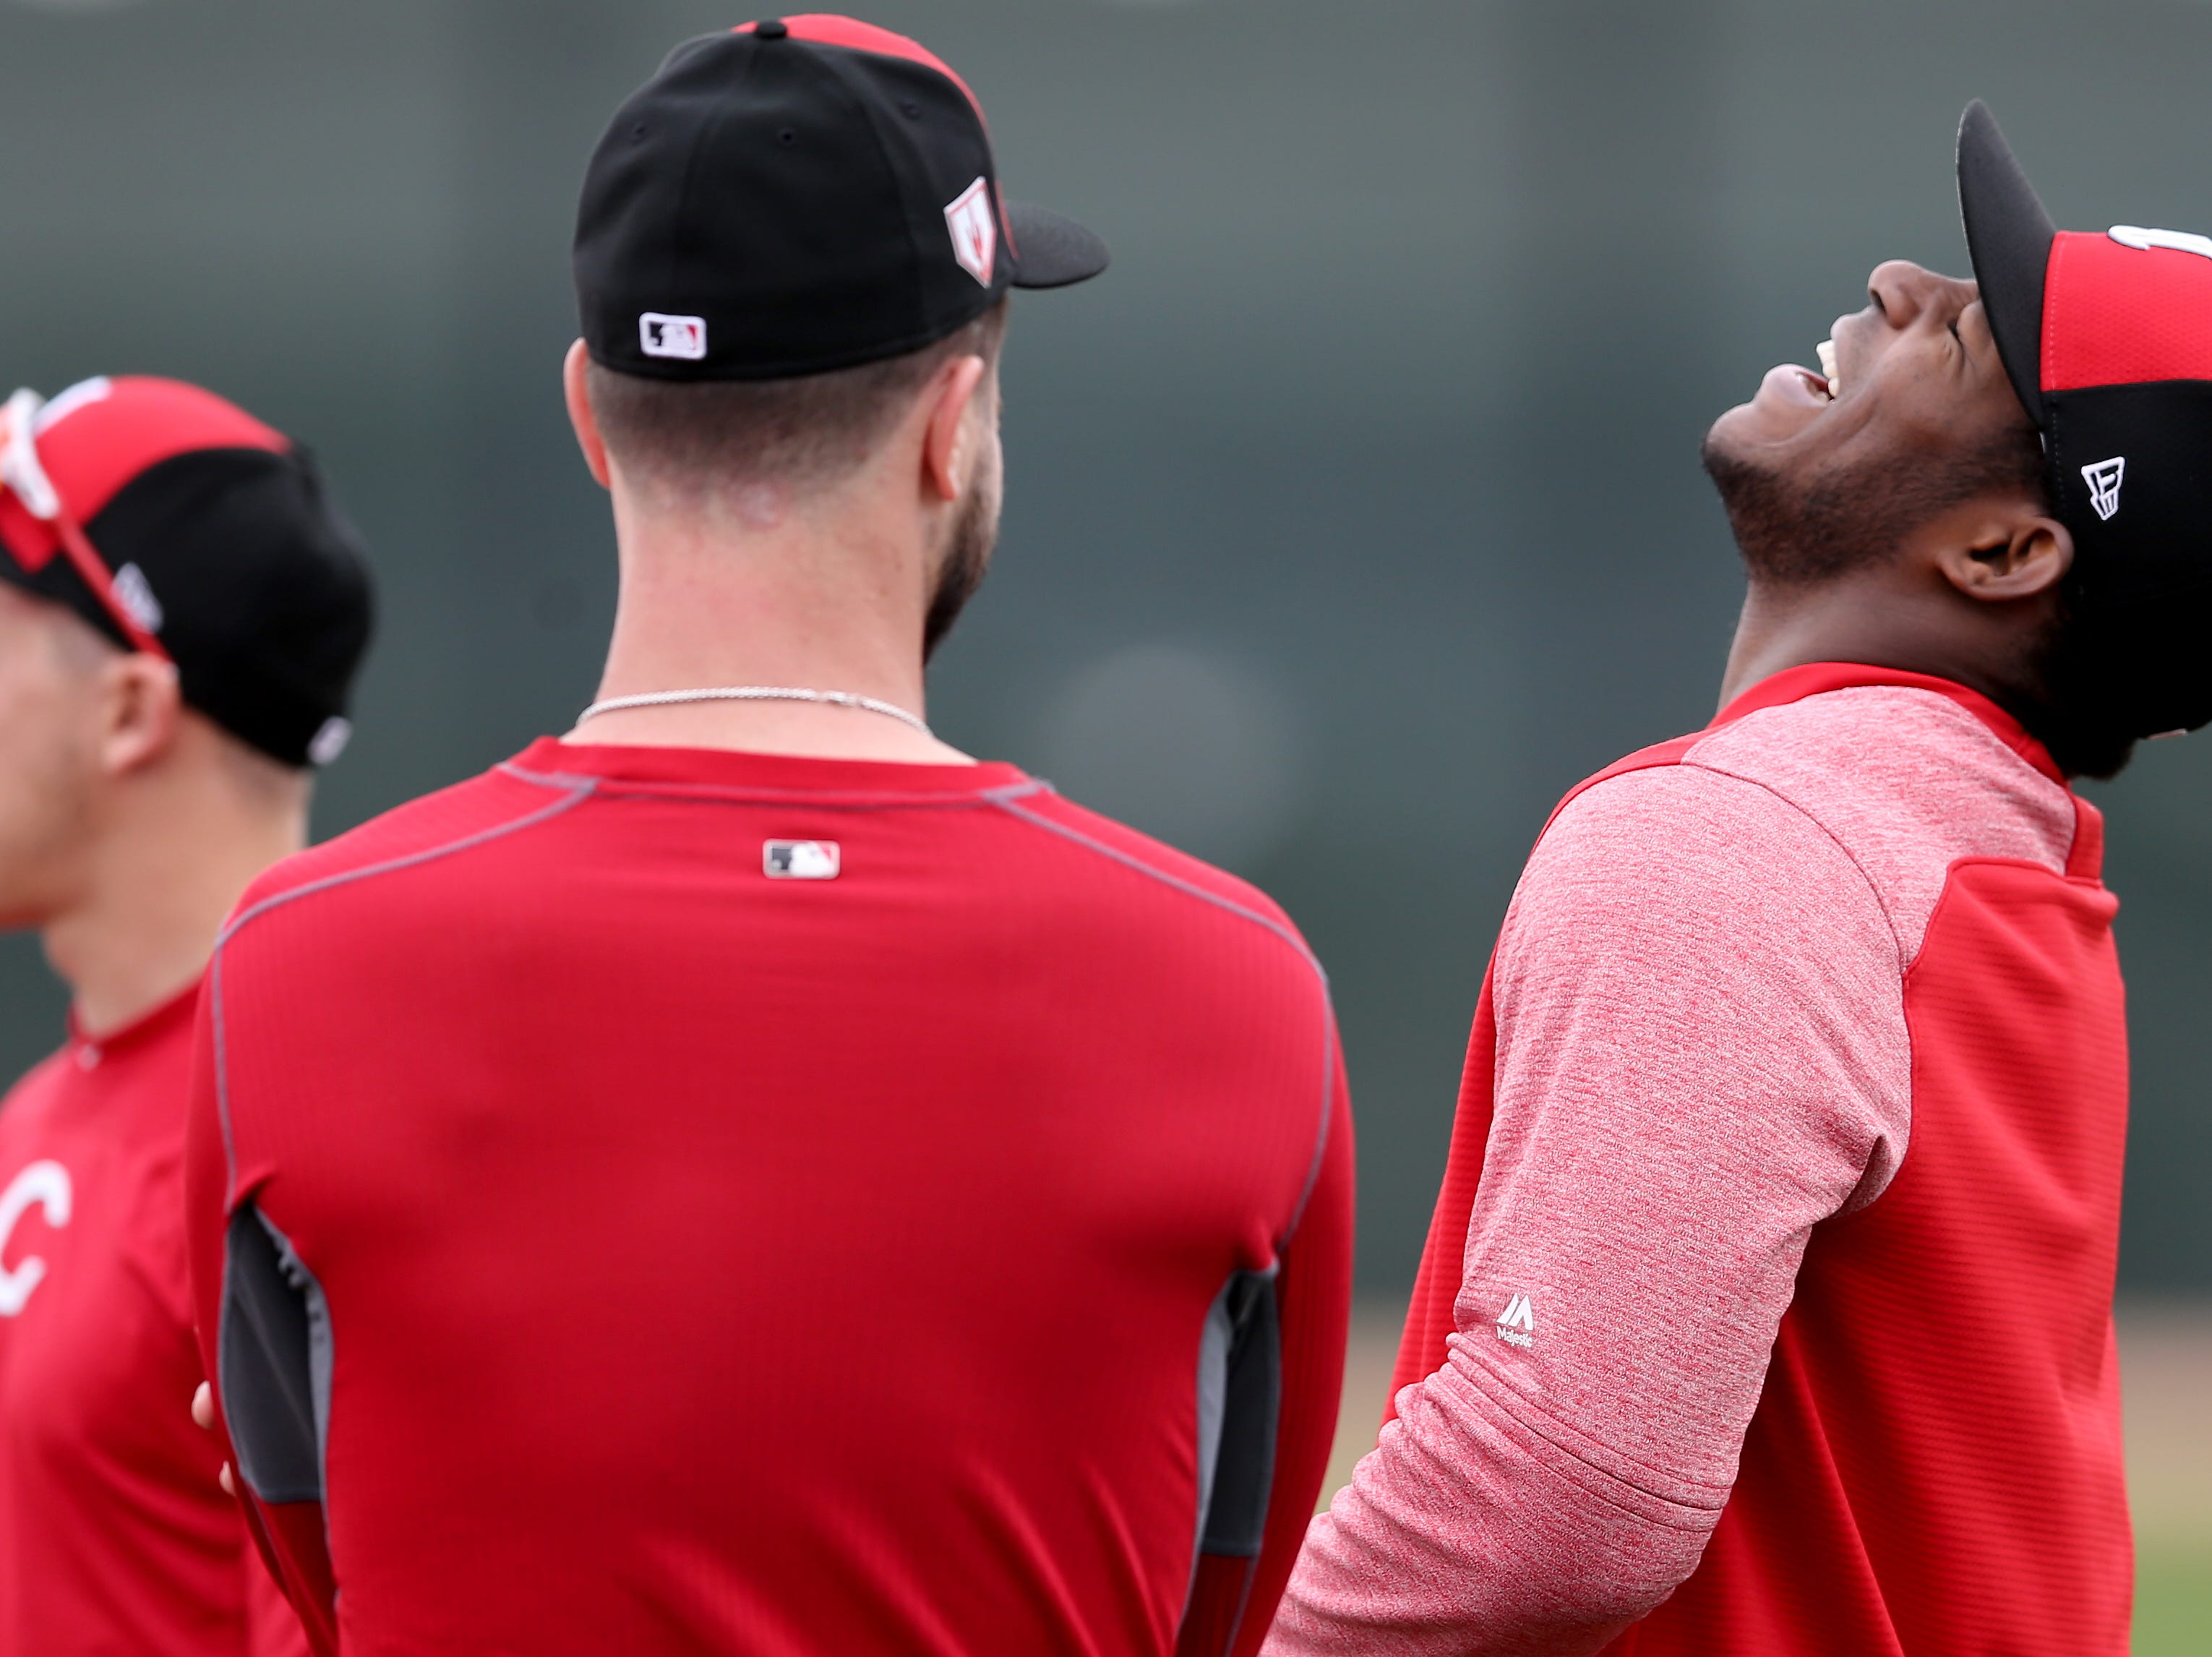 Cincinnati Reds outfielder Yasiel Puig (66), right, laughs at a joke by Cincinnati Reds right fielder Jesse Winker (33), Wednesday, Feb. 13, 2019, at the Cincinnati Reds spring training facility in Goodyear, Arizona.